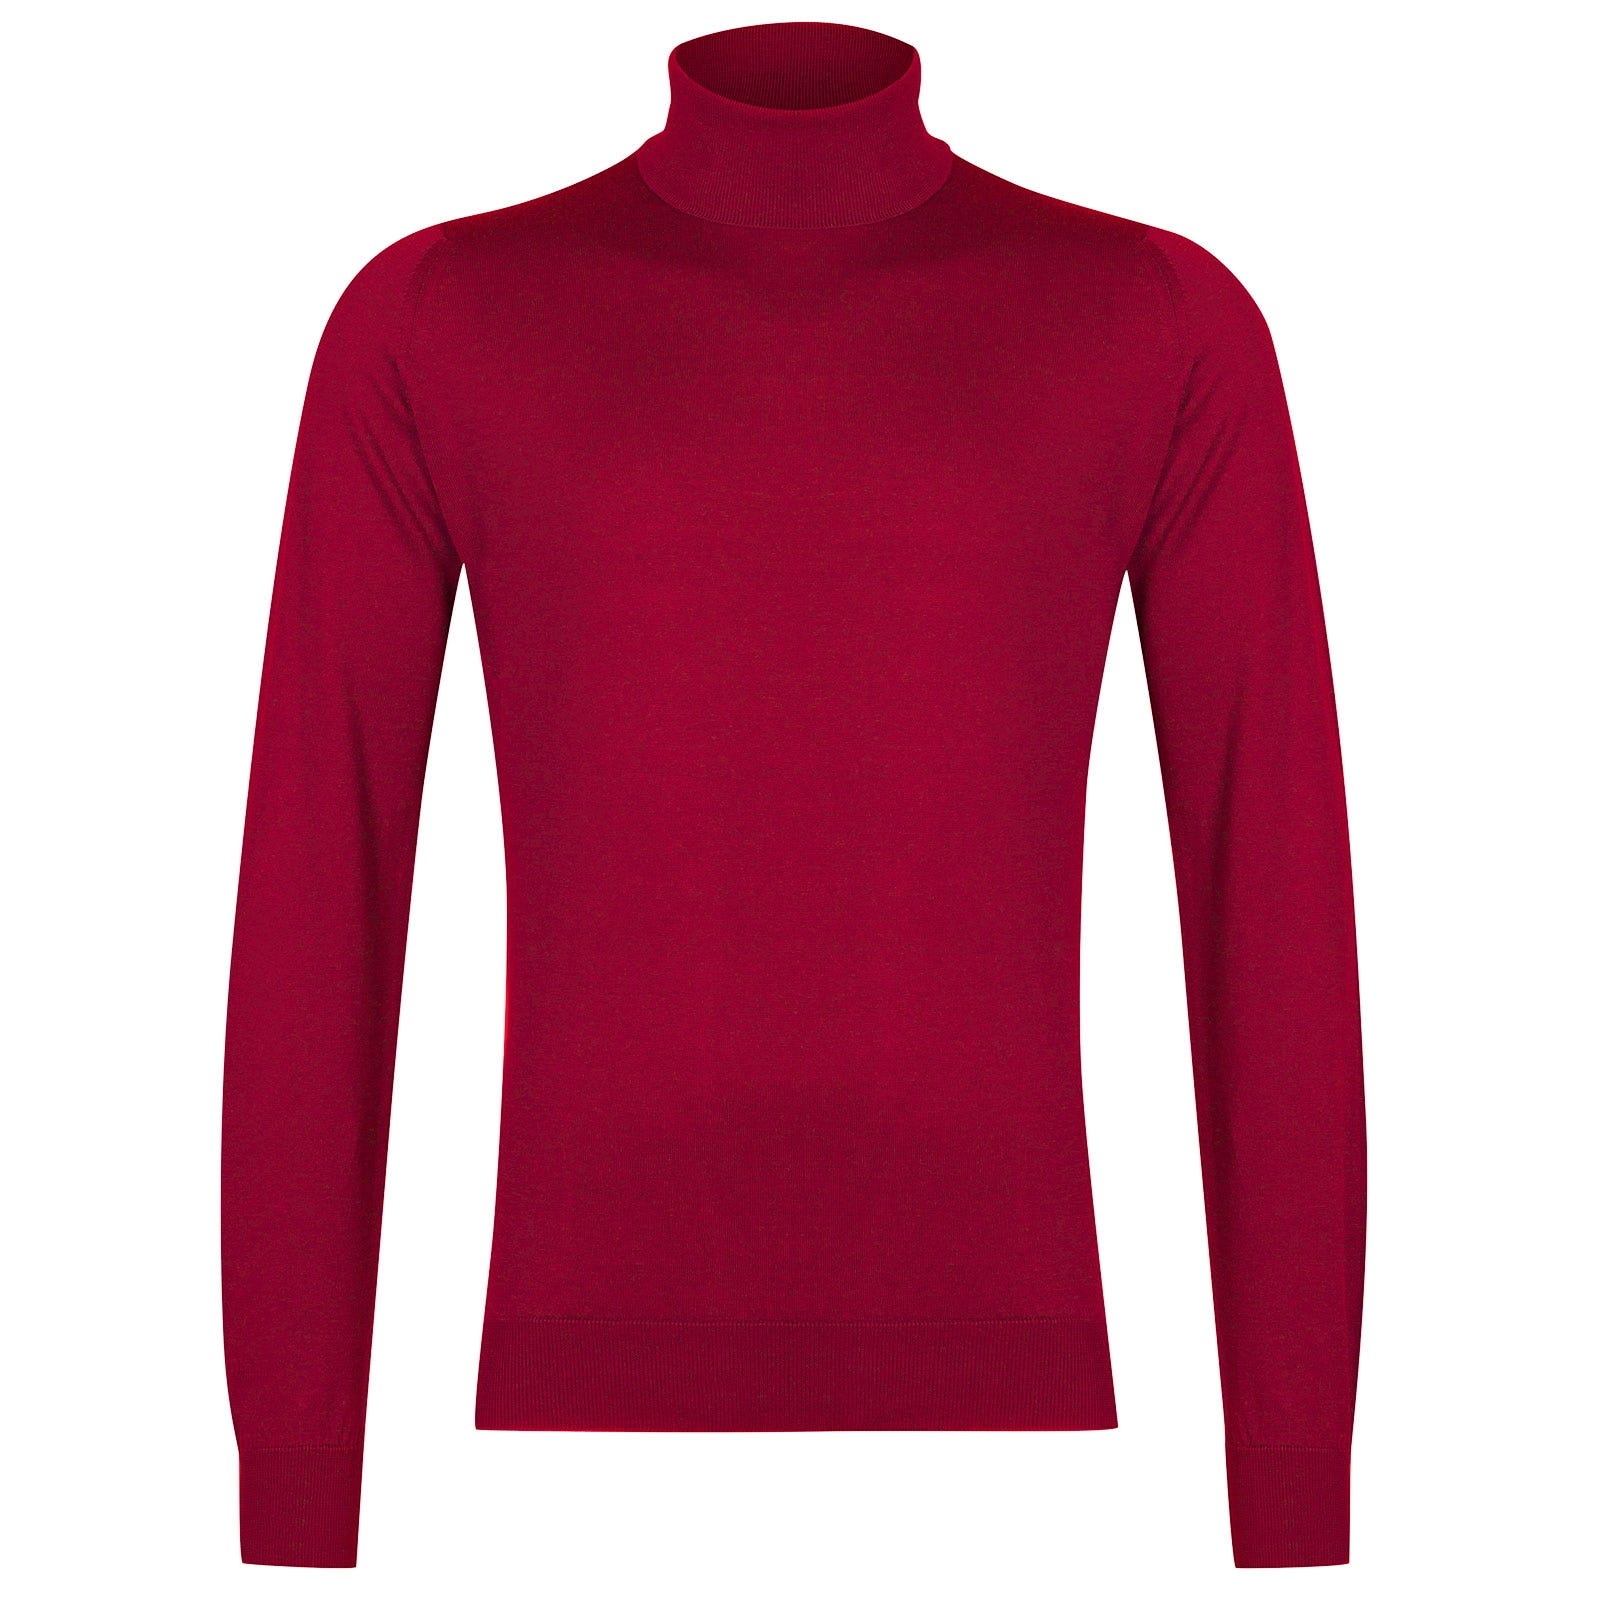 John Smedley Hawley Sea Island Cotton Pullover in Scarlet Sky-XL